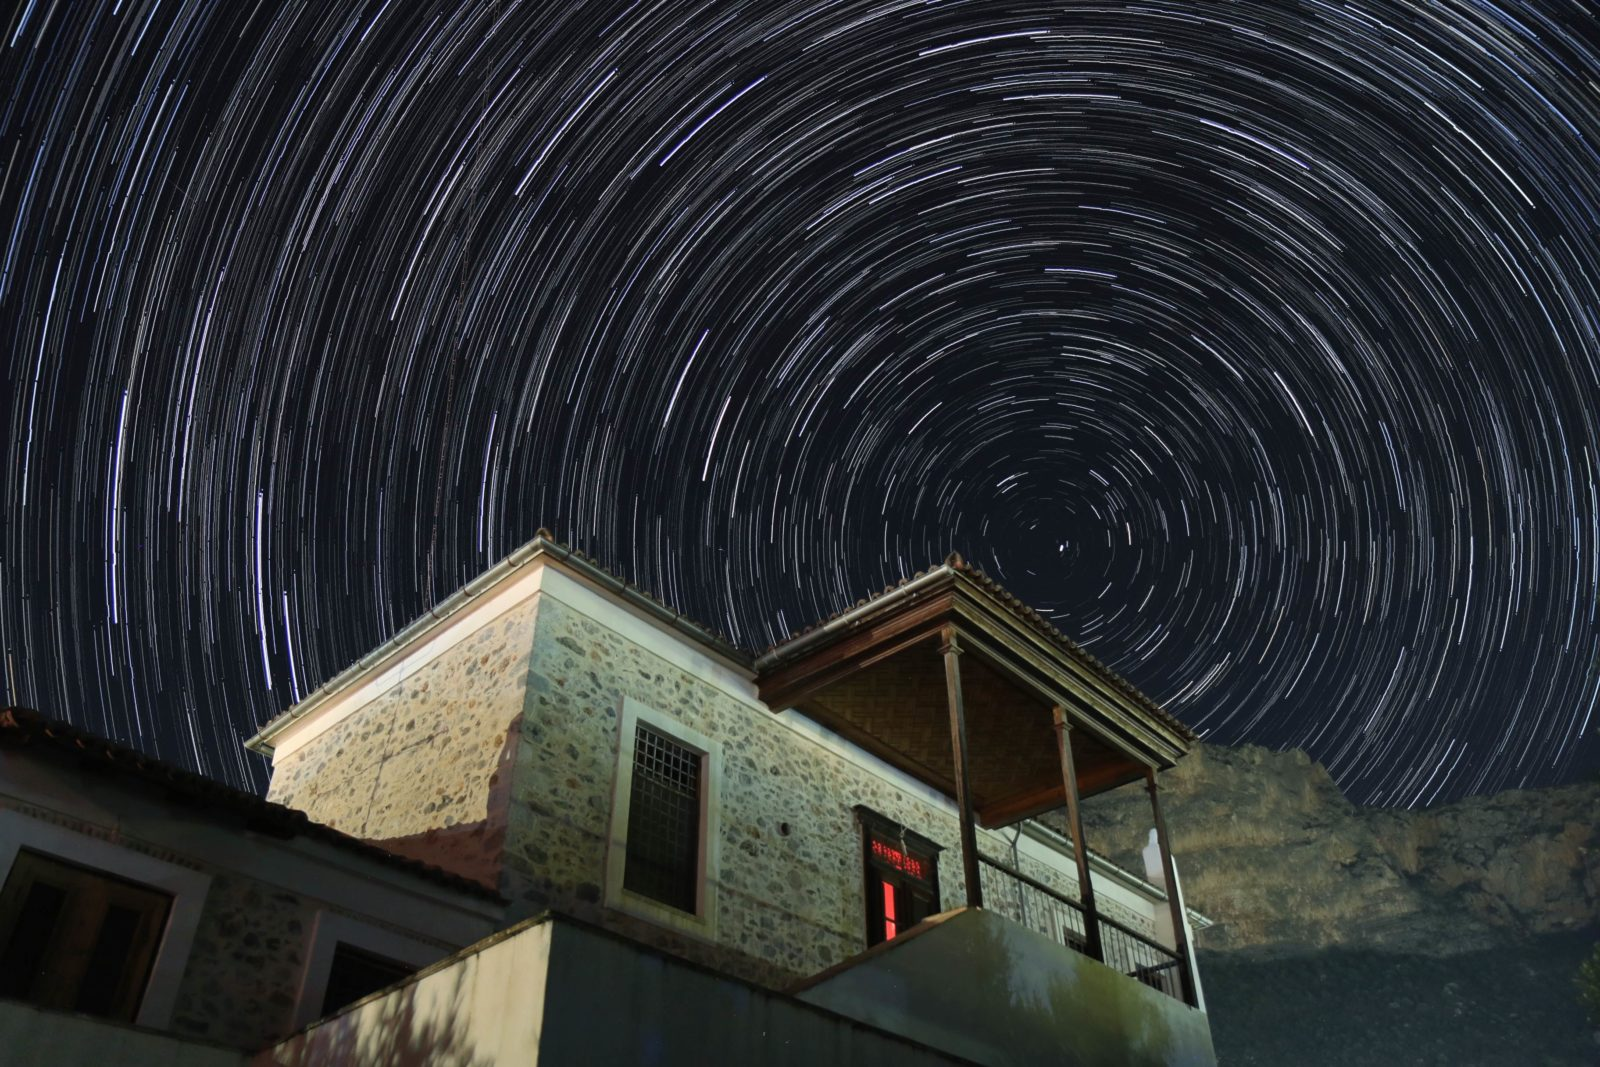 Star trails at home